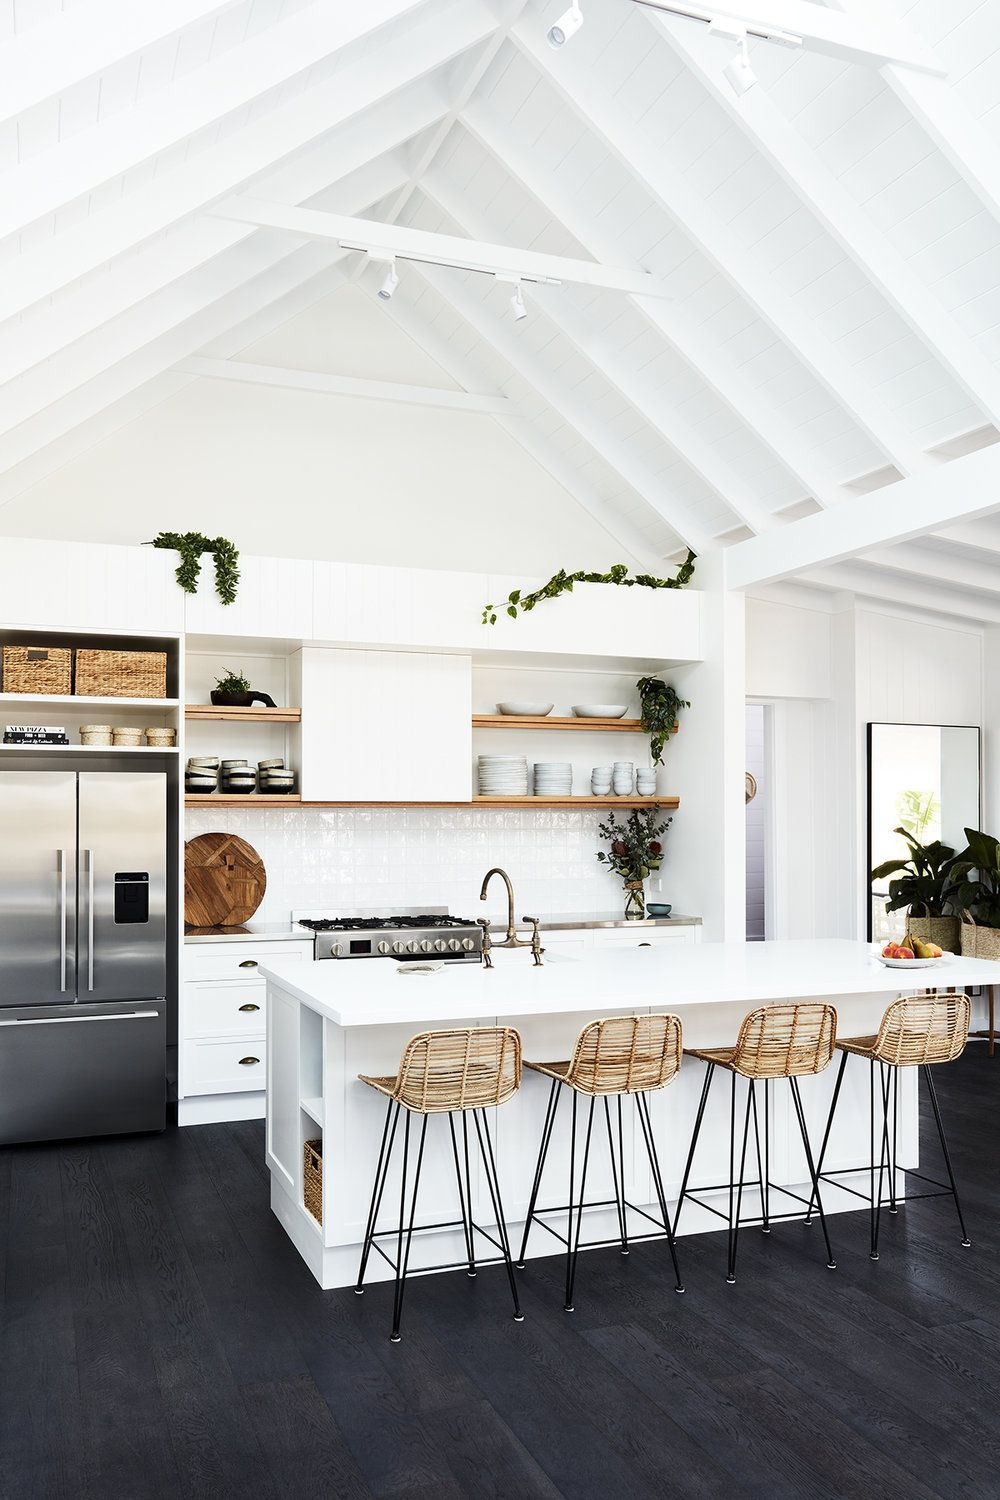 Farmhouse With Soul #minimalkitchen With the goal of creating a beach house to e...